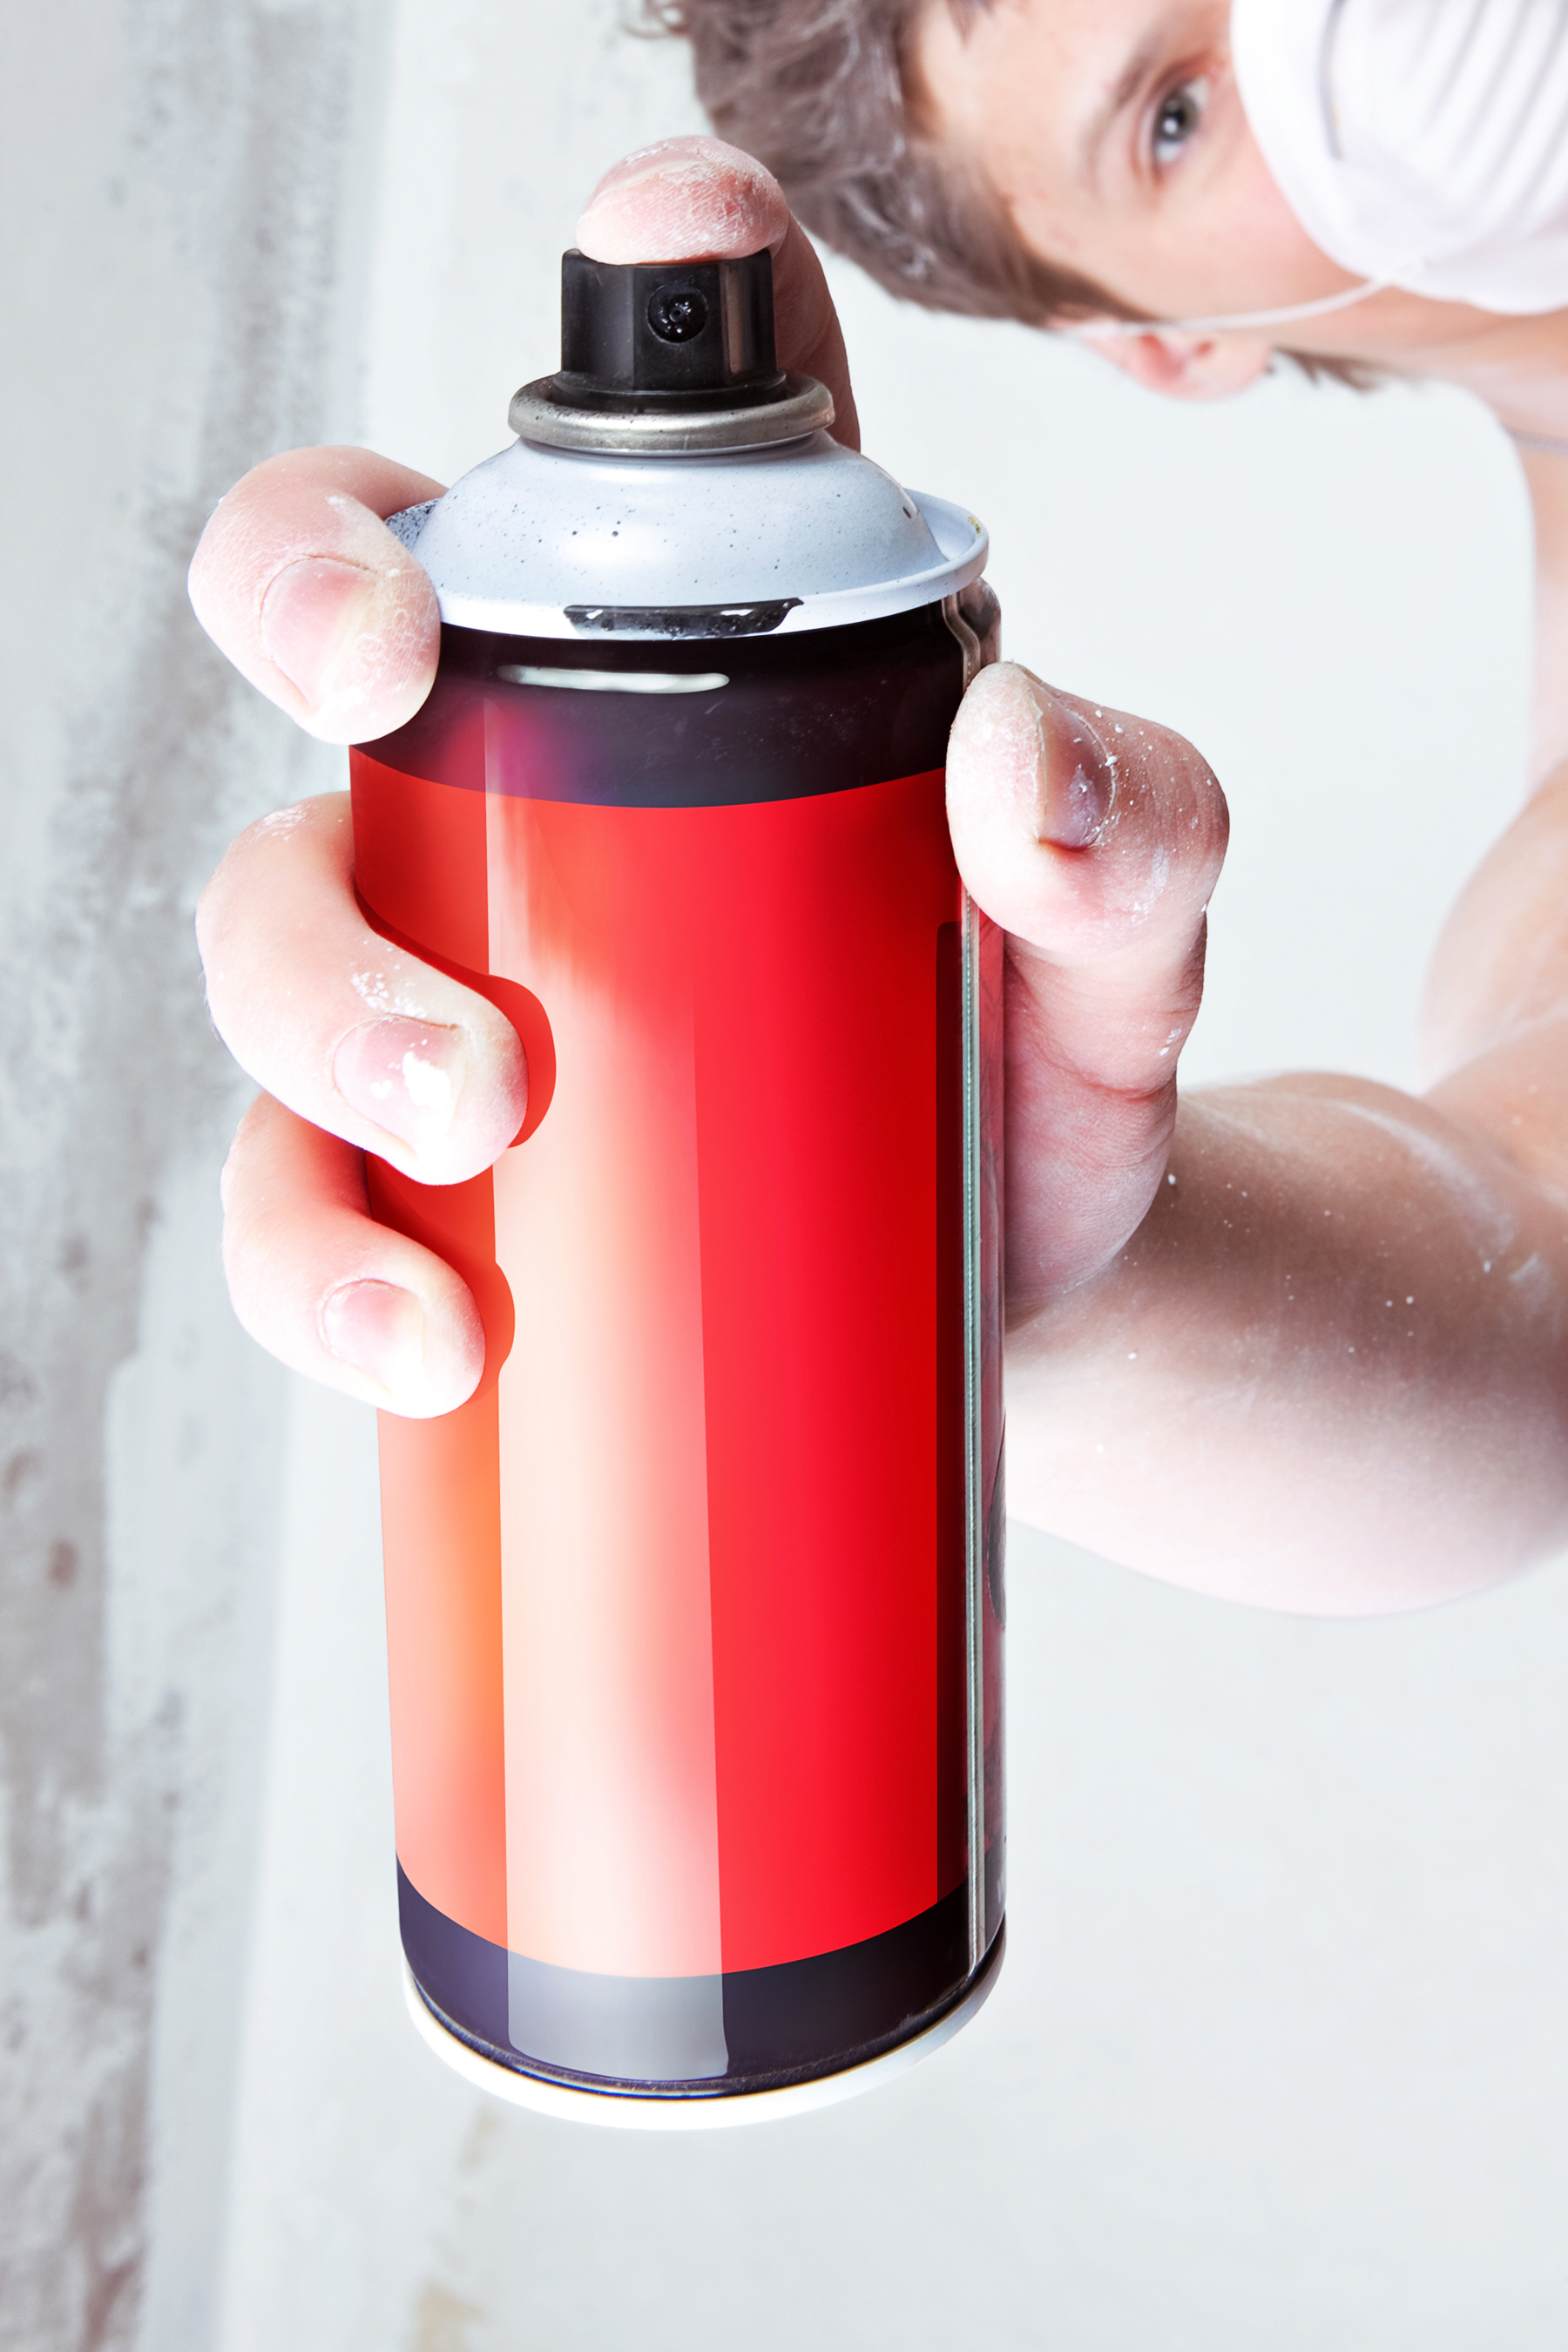 Spray can in hand photo